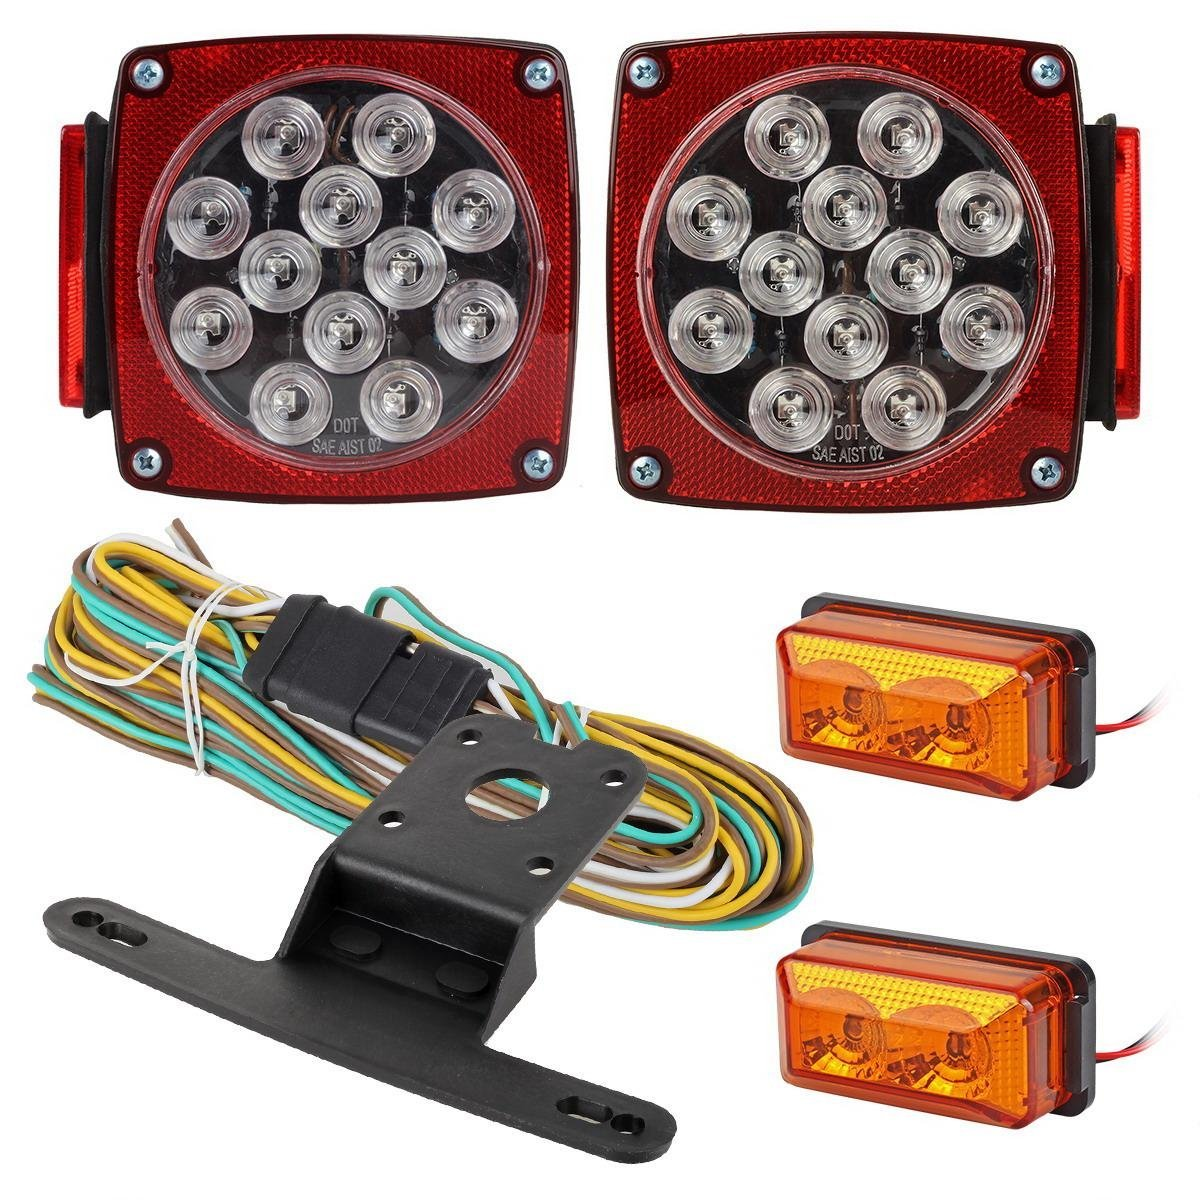 Amazon partsam led light kit trailer truck tail turn stop amazon partsam led light kit trailer truck tail turn stop boat light amber side marker w wire harness total of 4pcs automotive sciox Choice Image